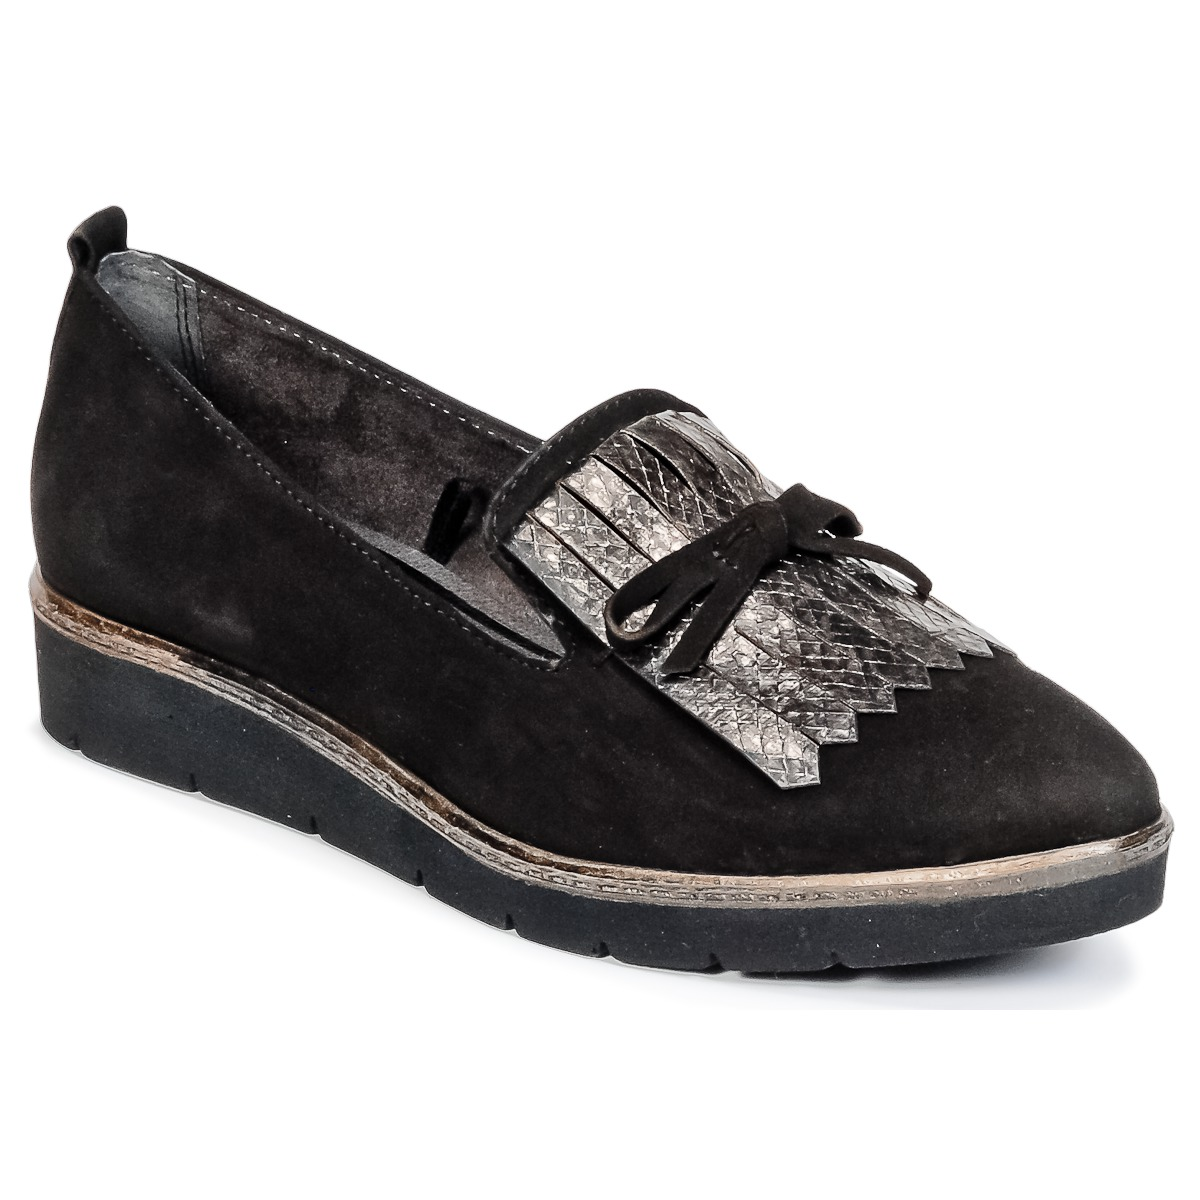 1b63549ccab cheap Tamaris NADYMA Black Shoes Derby Shoes Women - s132716079 ...